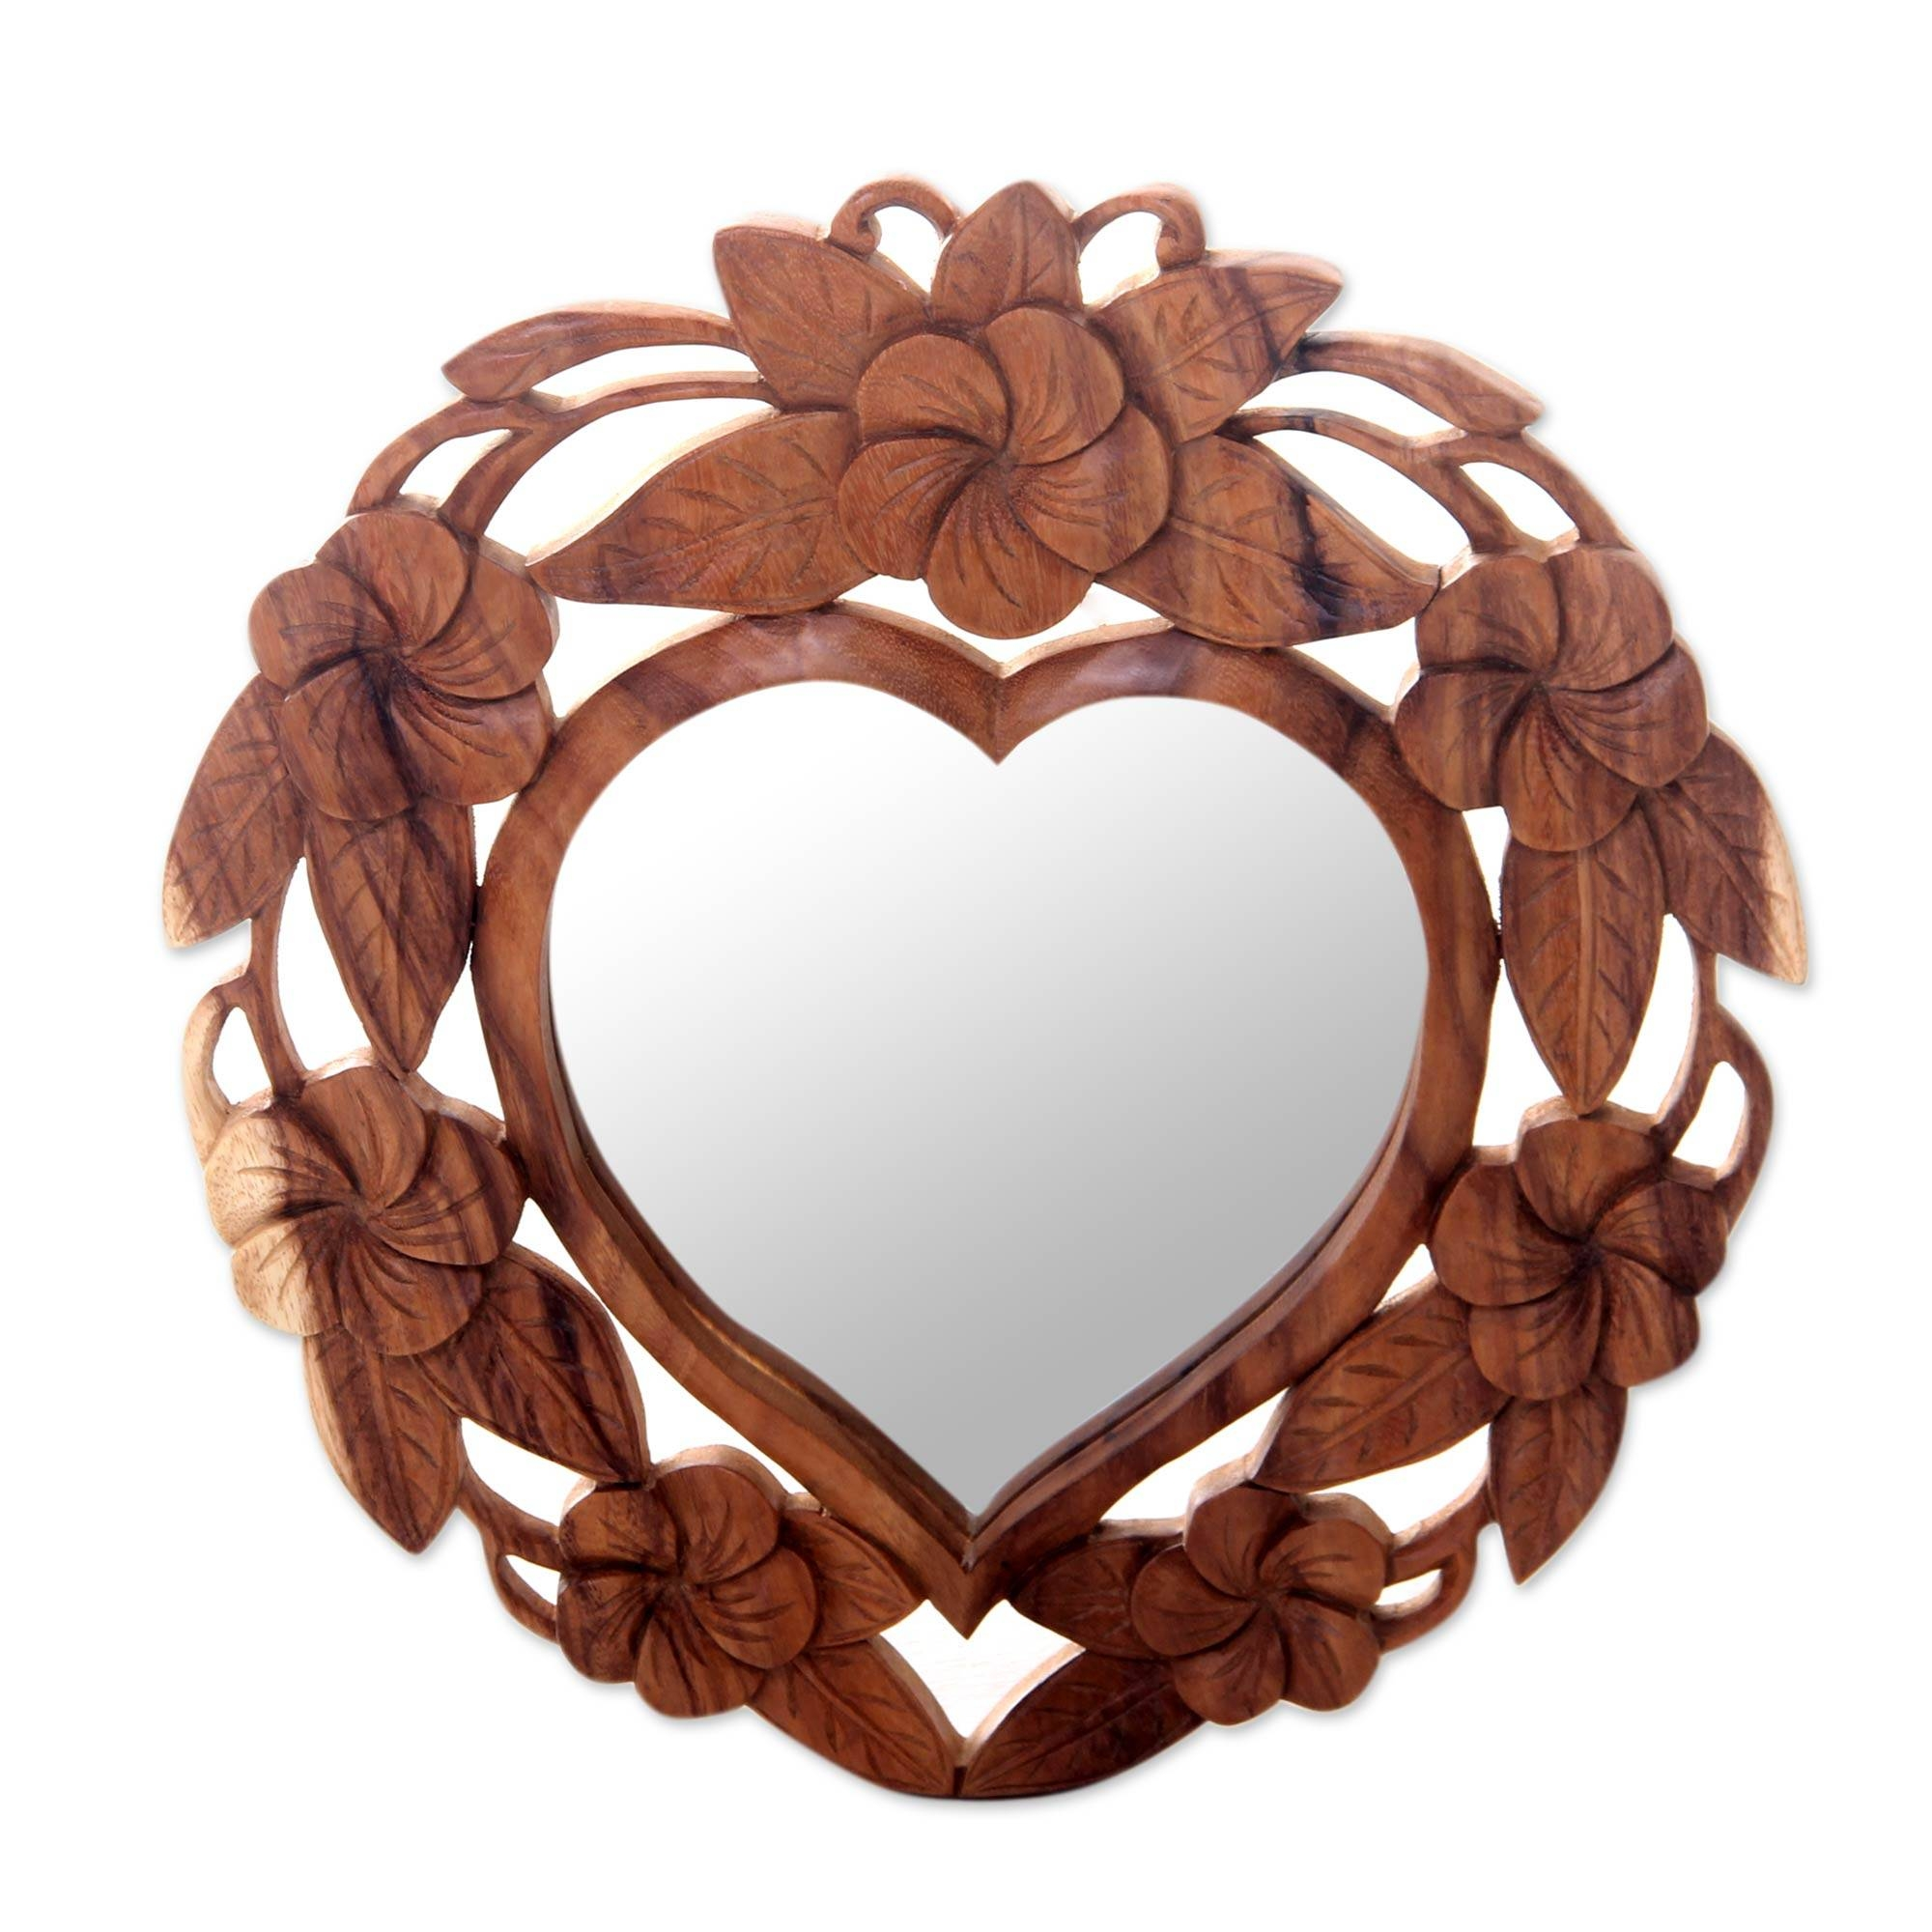 Heart Shaped Wood Wall Mirror With Floral Motif – Frangipani Heart Intended For Heart Wall Mirrors (View 15 of 25)